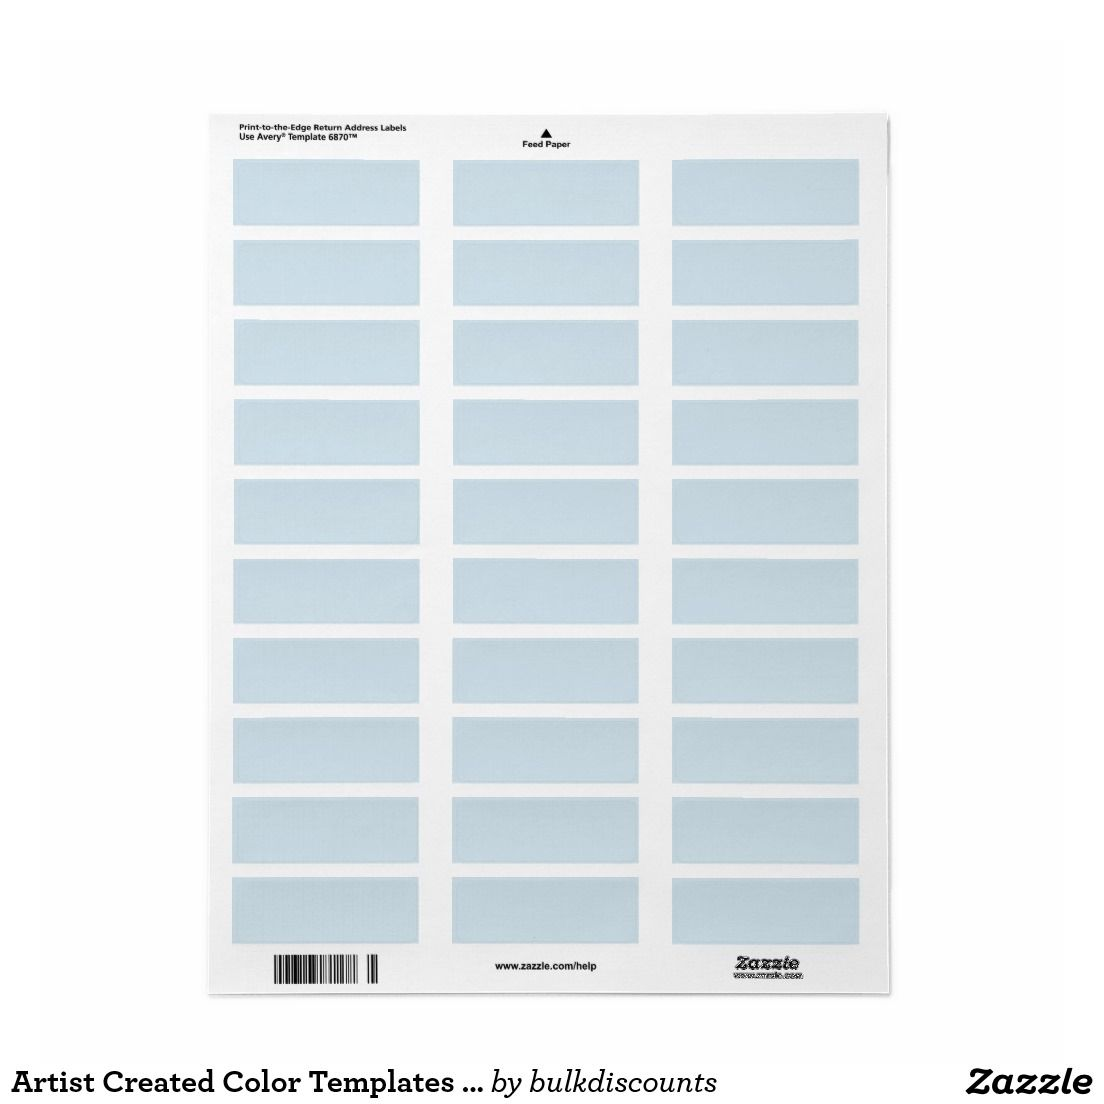 Artist Created Color Templates Labels Stickers | Colors, Ps and ...